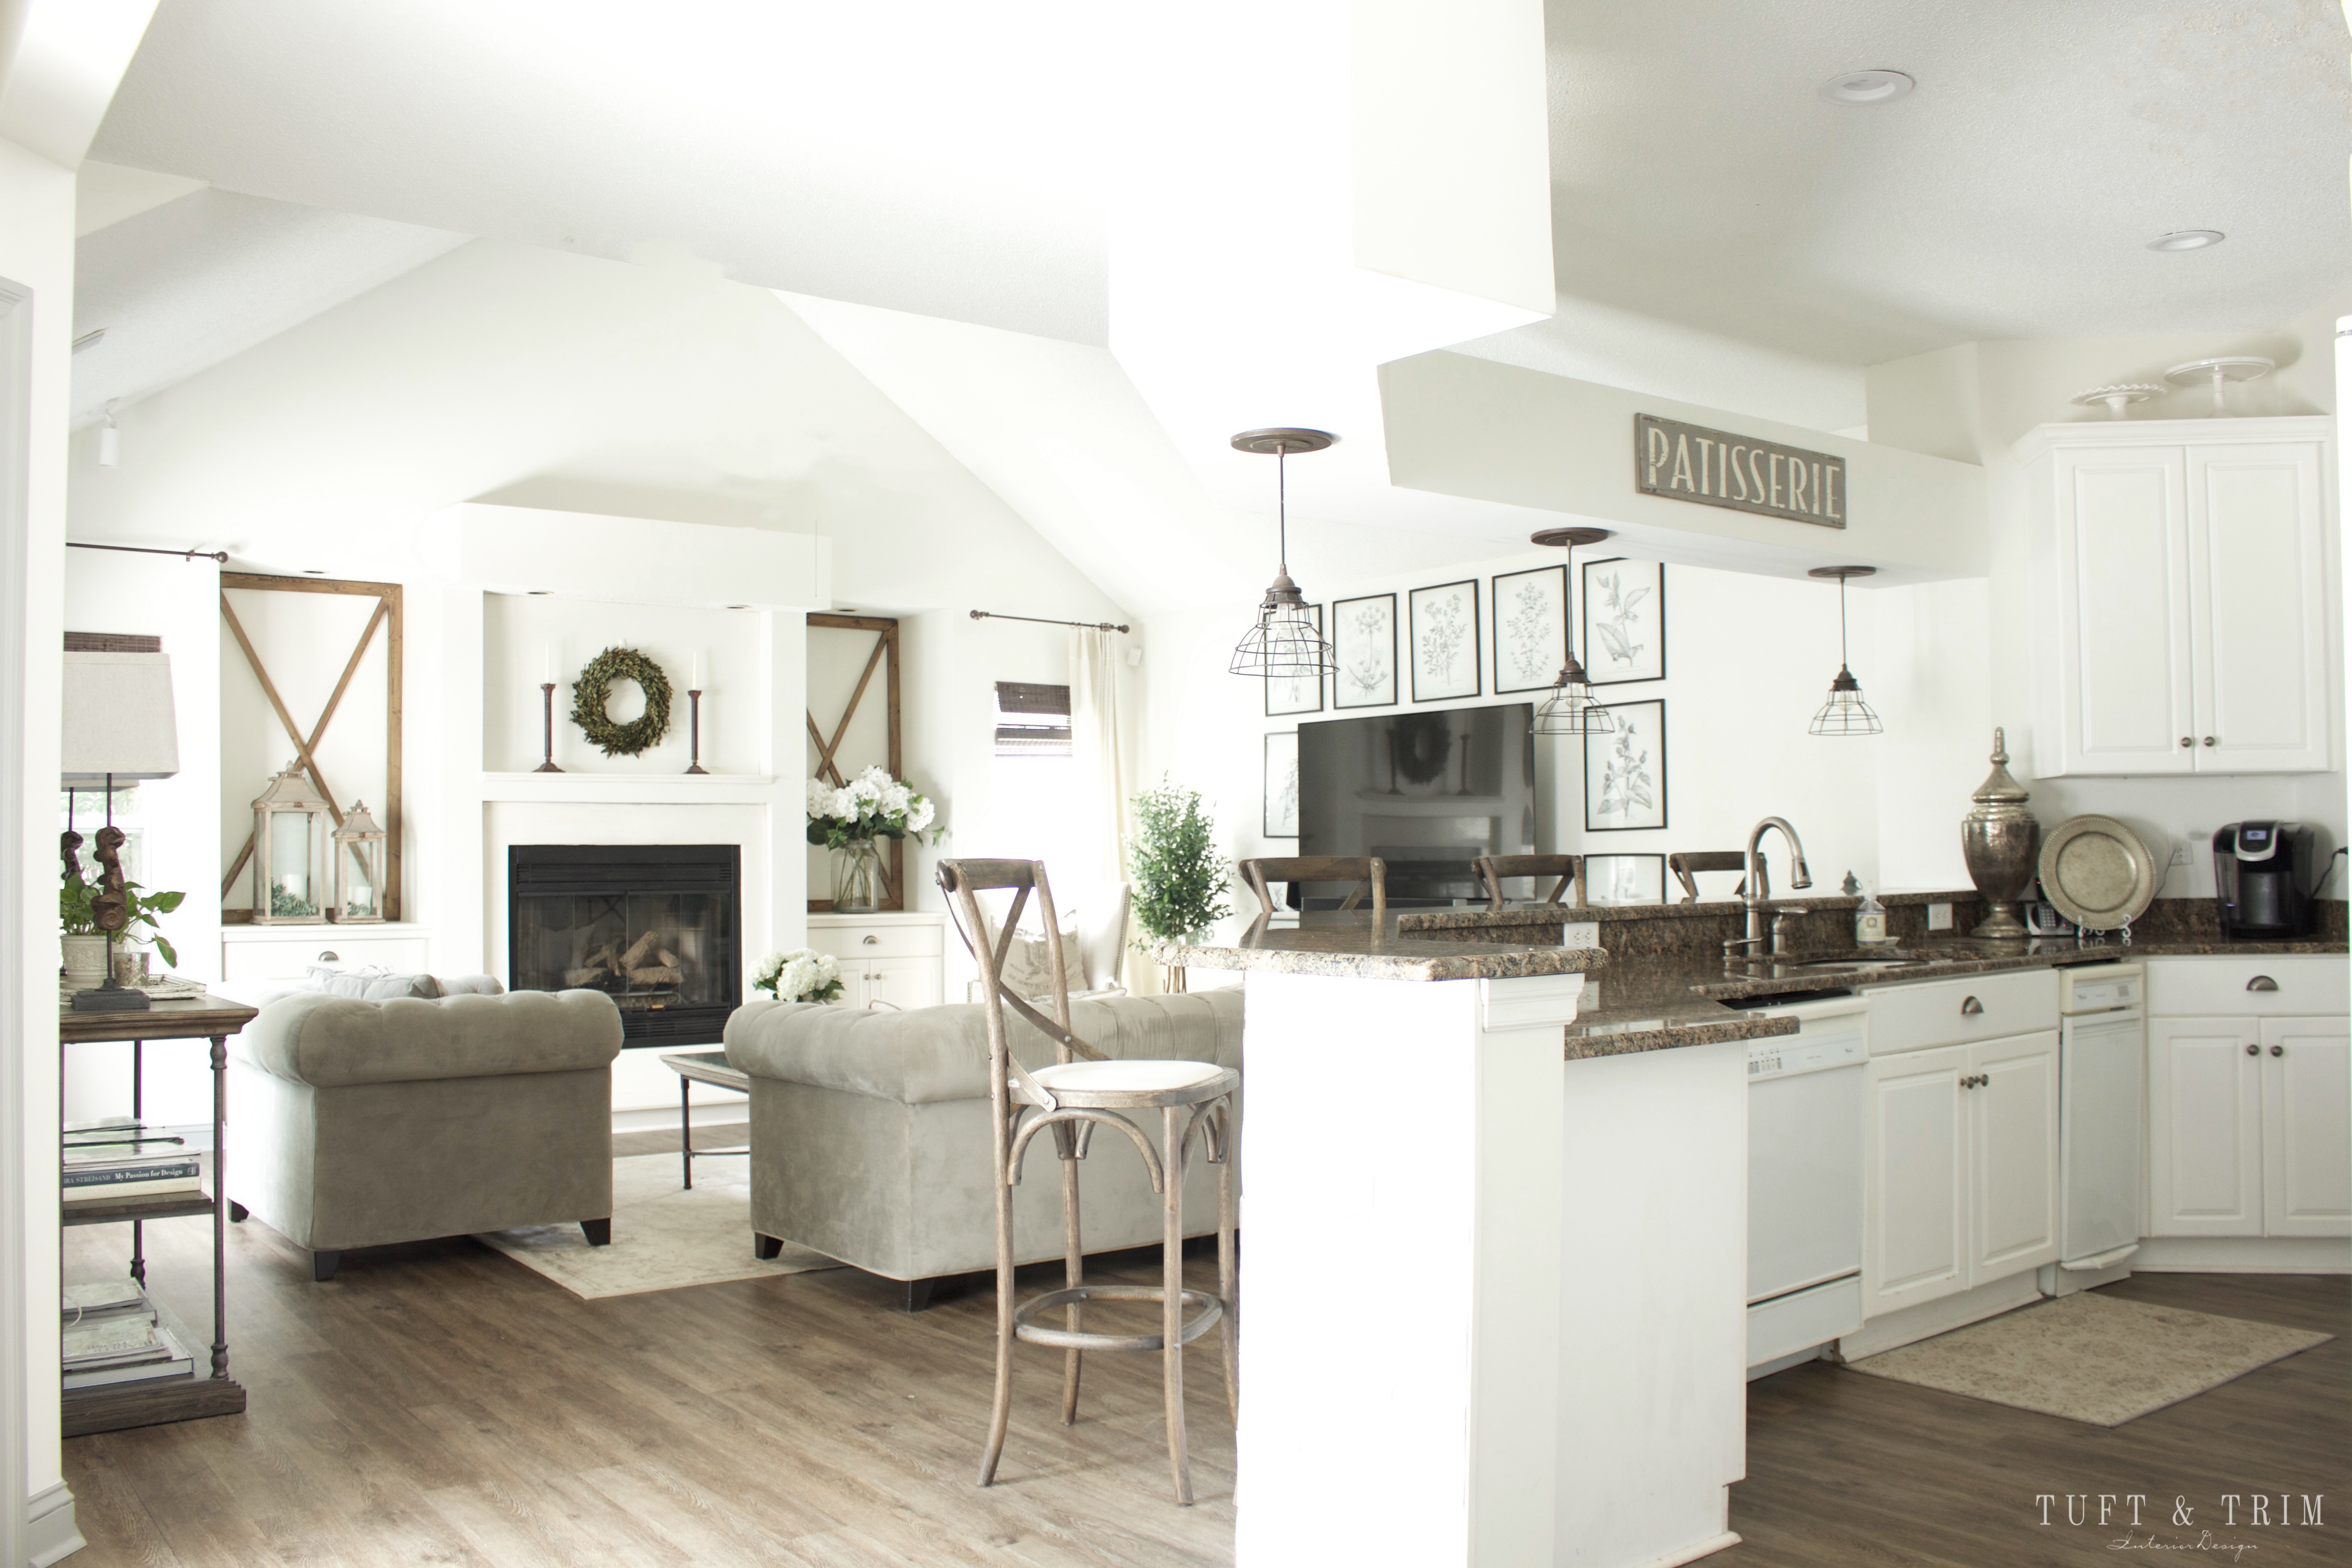 100 Kitchens On A Budget Our French Country Kitchen Tour Our Southern Home Kitchens On A